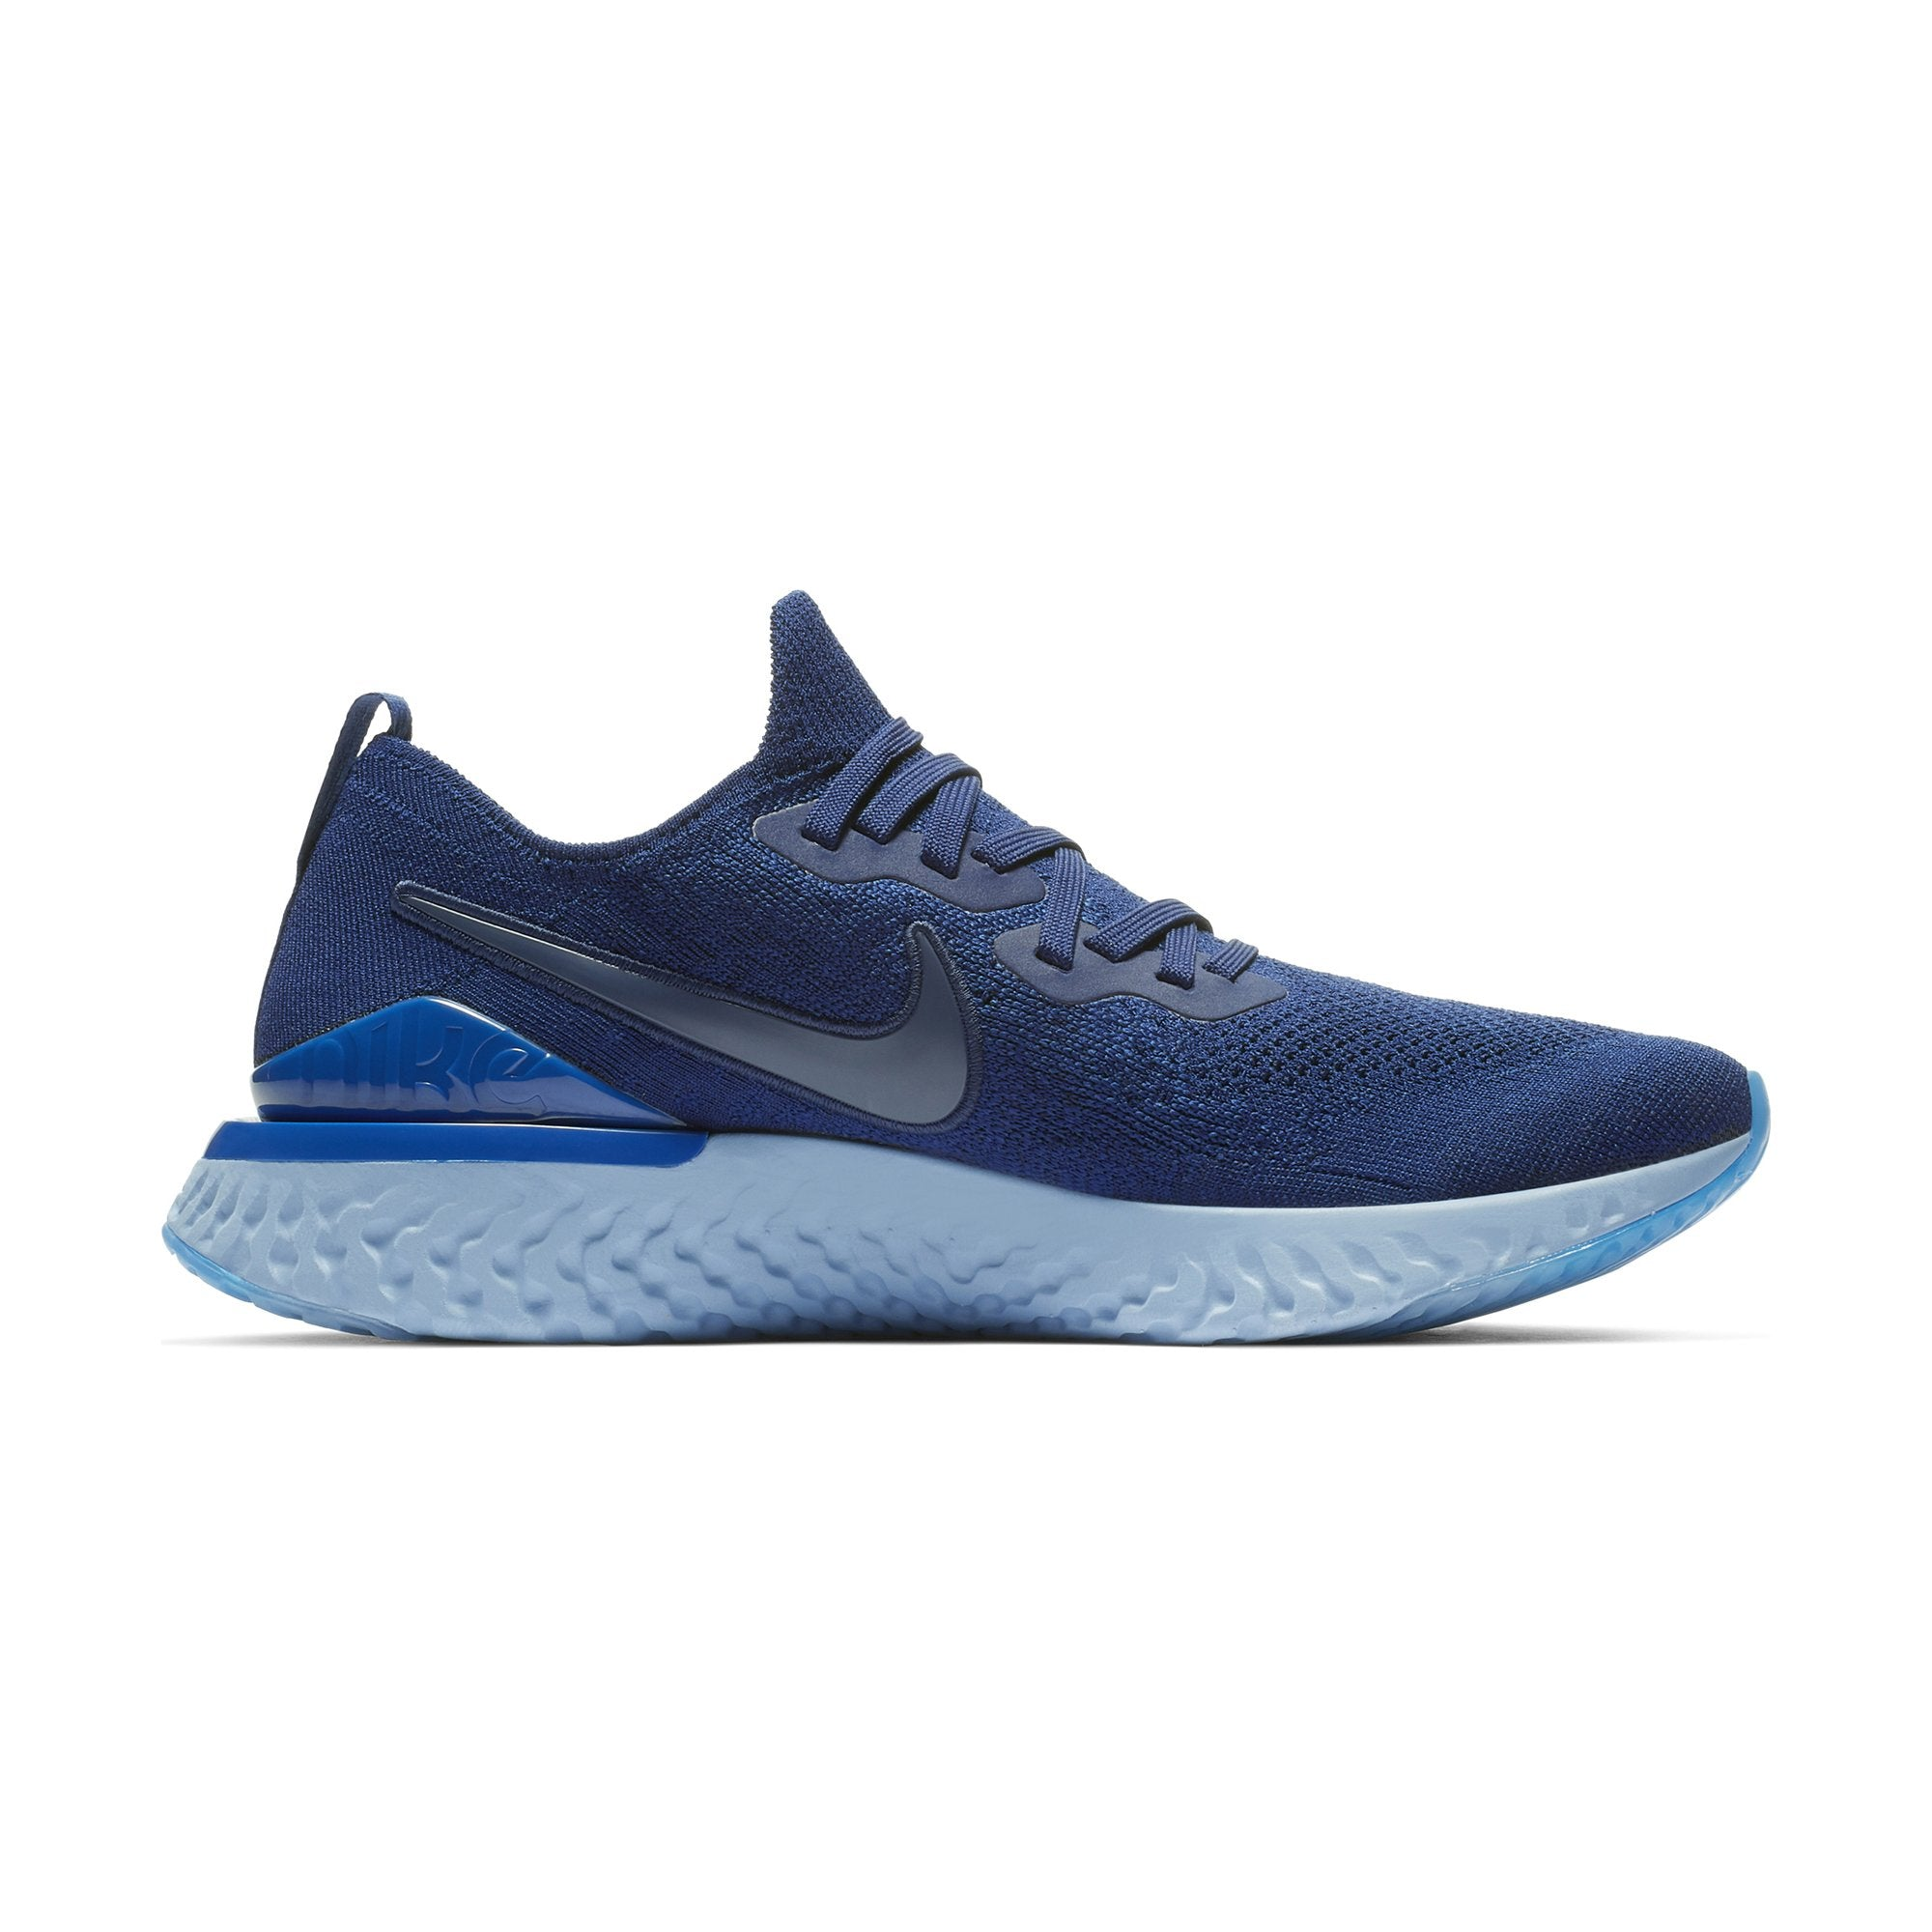 the best attitude a22d1 137bb Buy Nike Men Epic React Flyknit 2 Running Shoes, Blue Void Indigo Force  Black Online in Singapore   Royal Sporting House